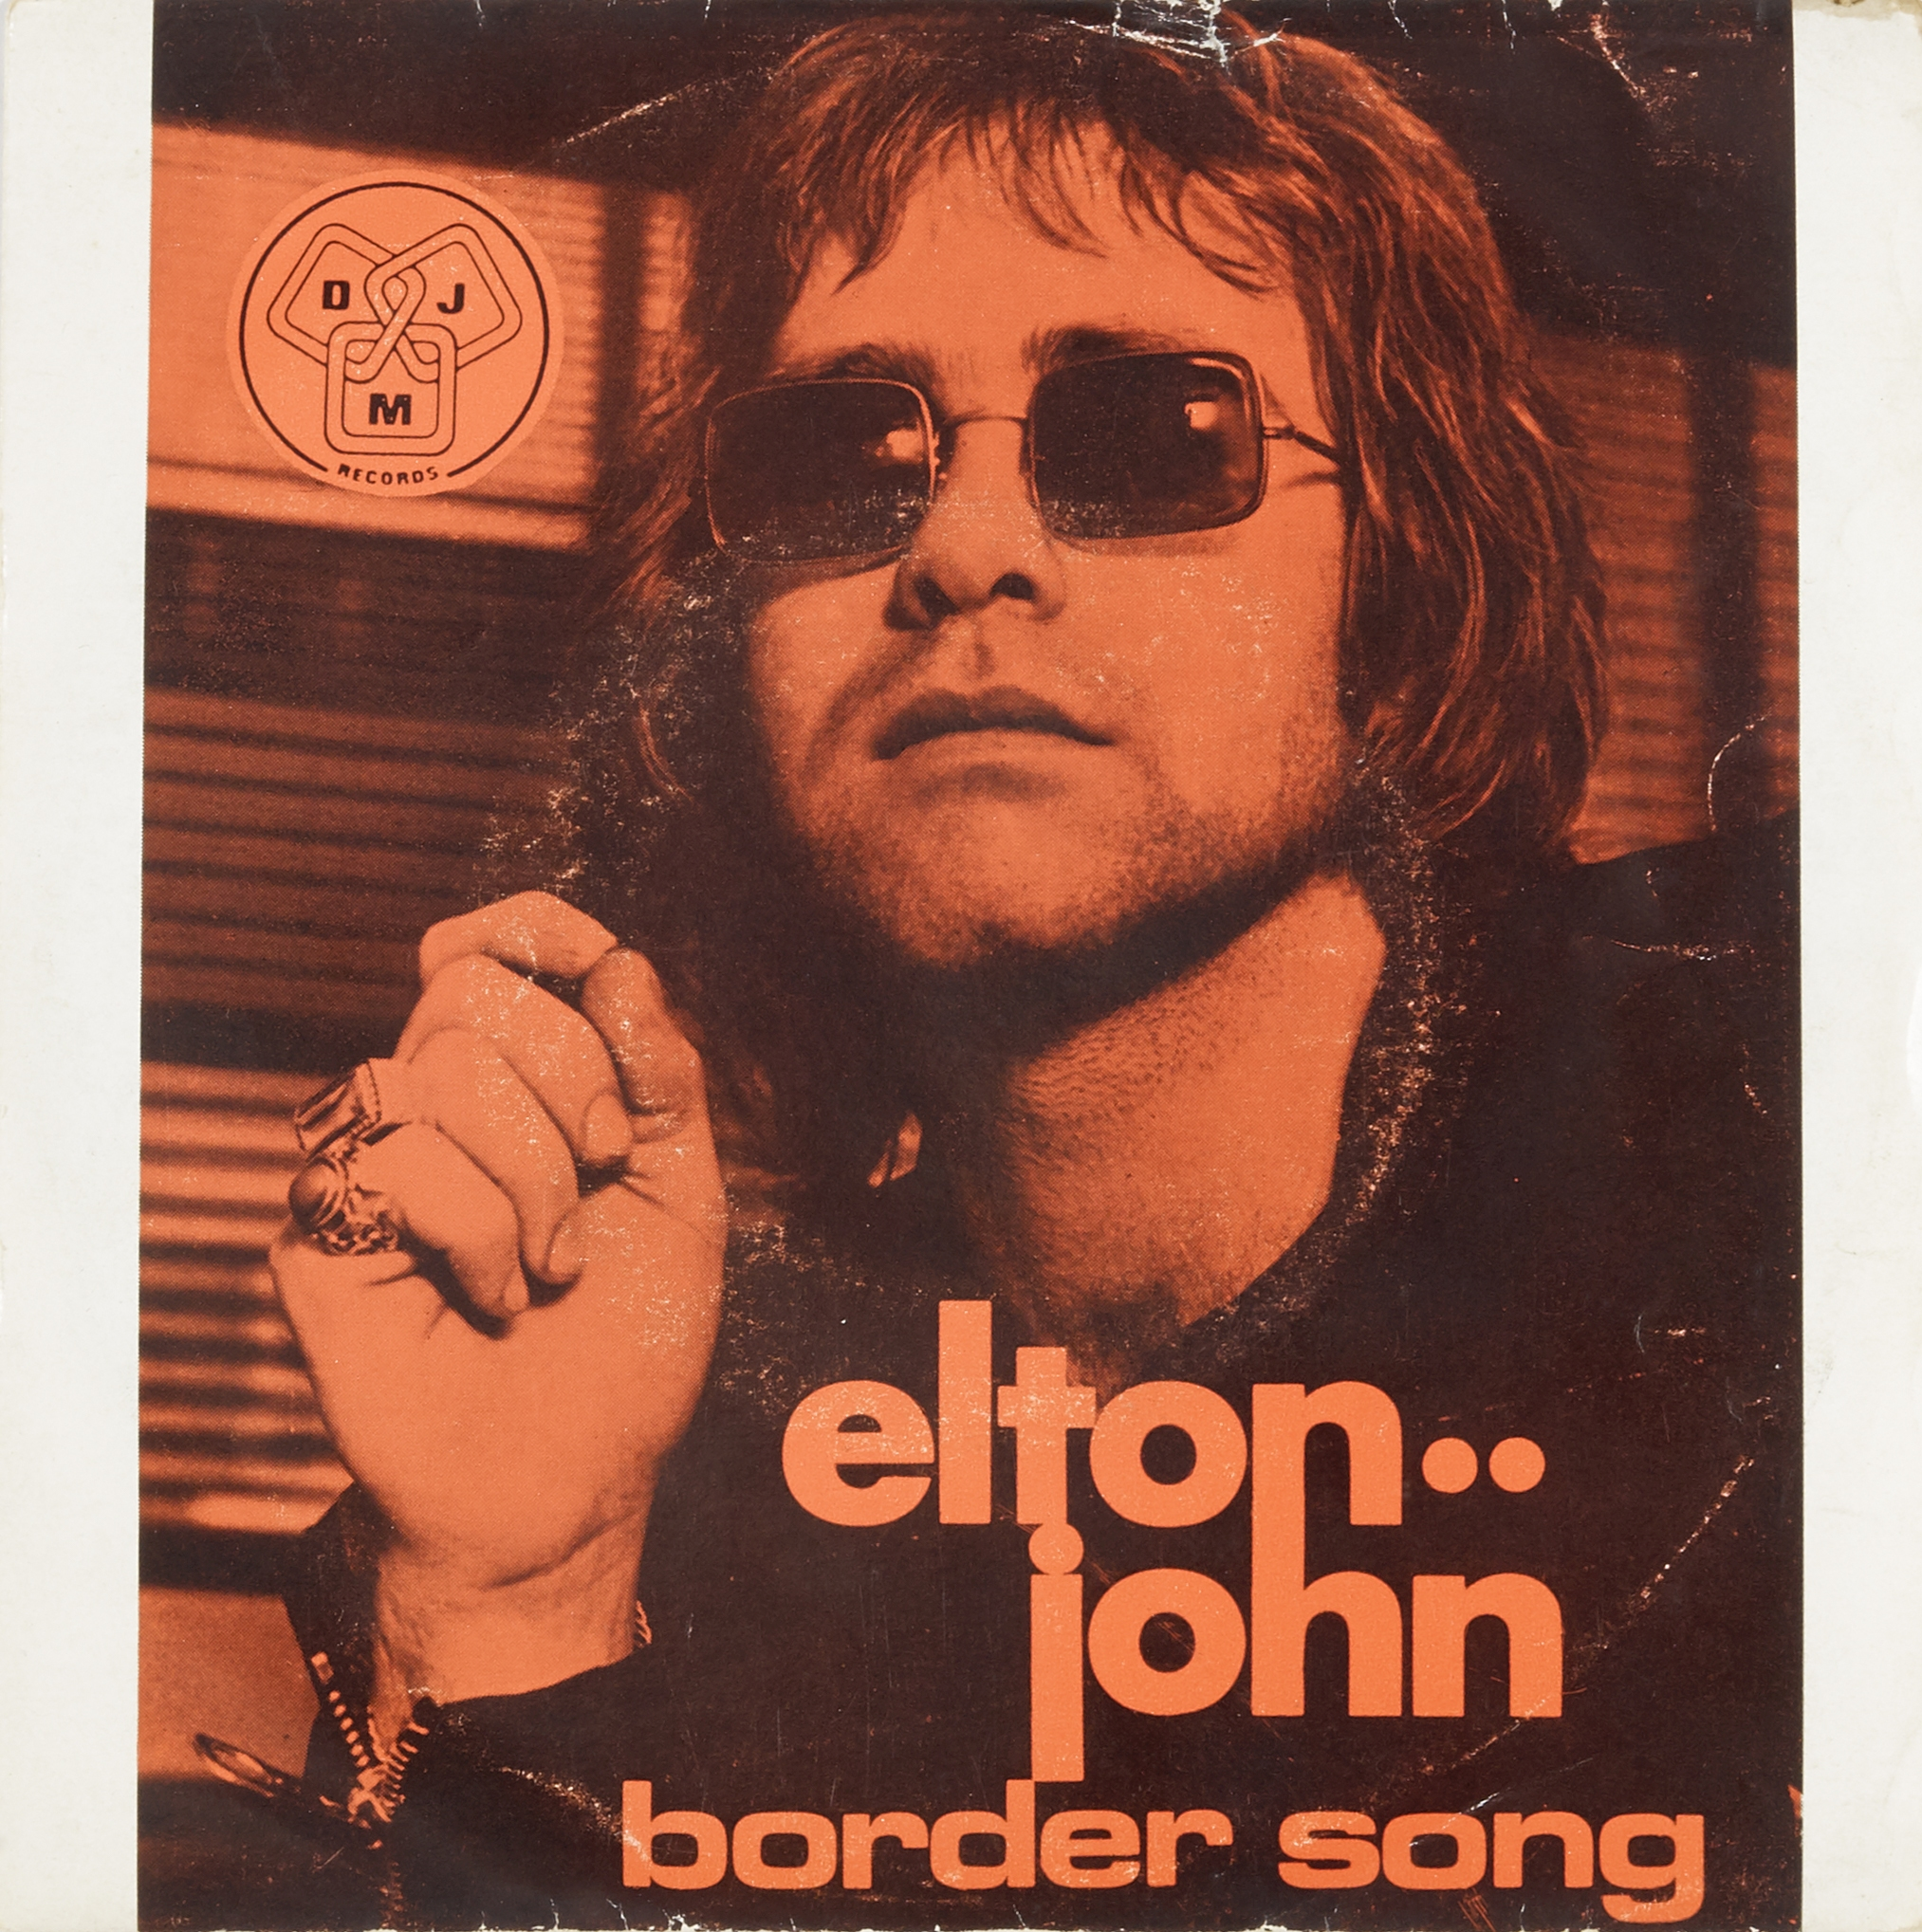 Lot 46 - Bernie Taupin's original lyrics to the early Elton John hit, 'The Border Song,' with annotations ...